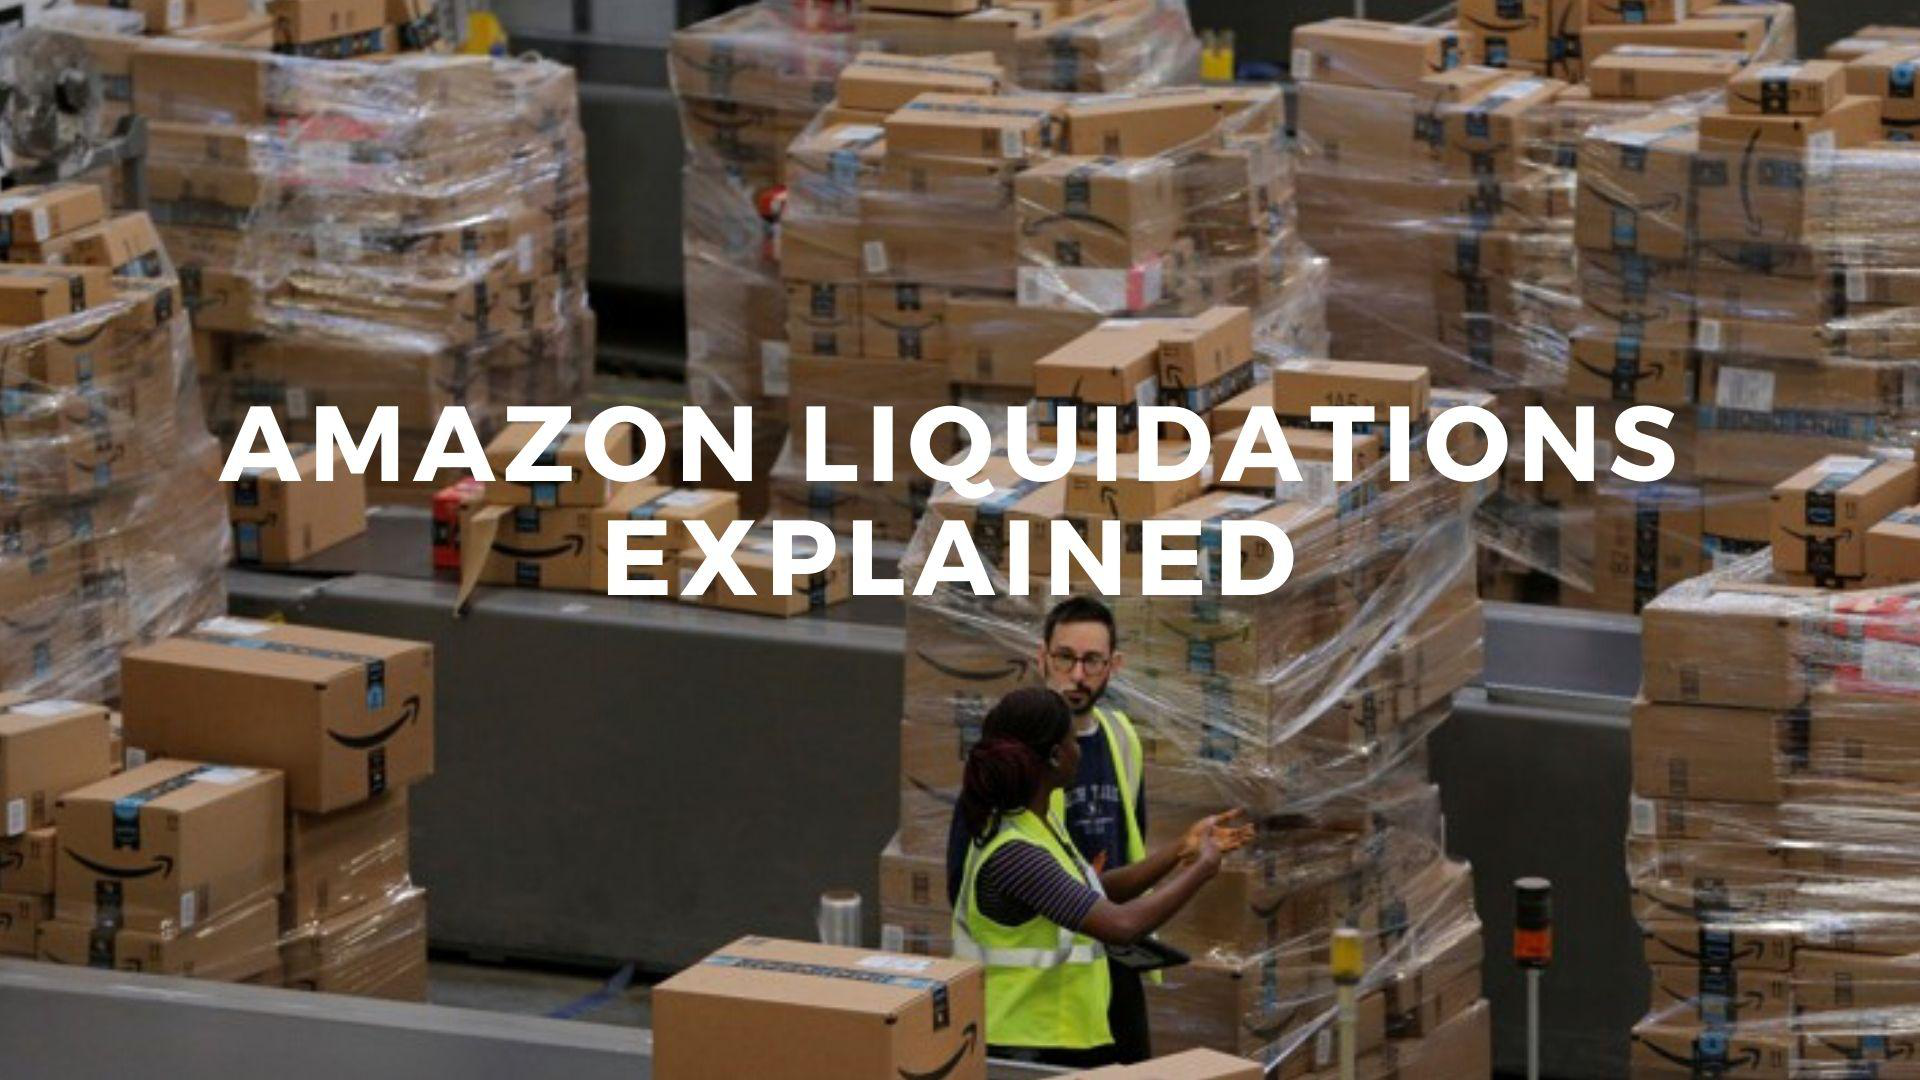 Amazon Liquidations Explained.png